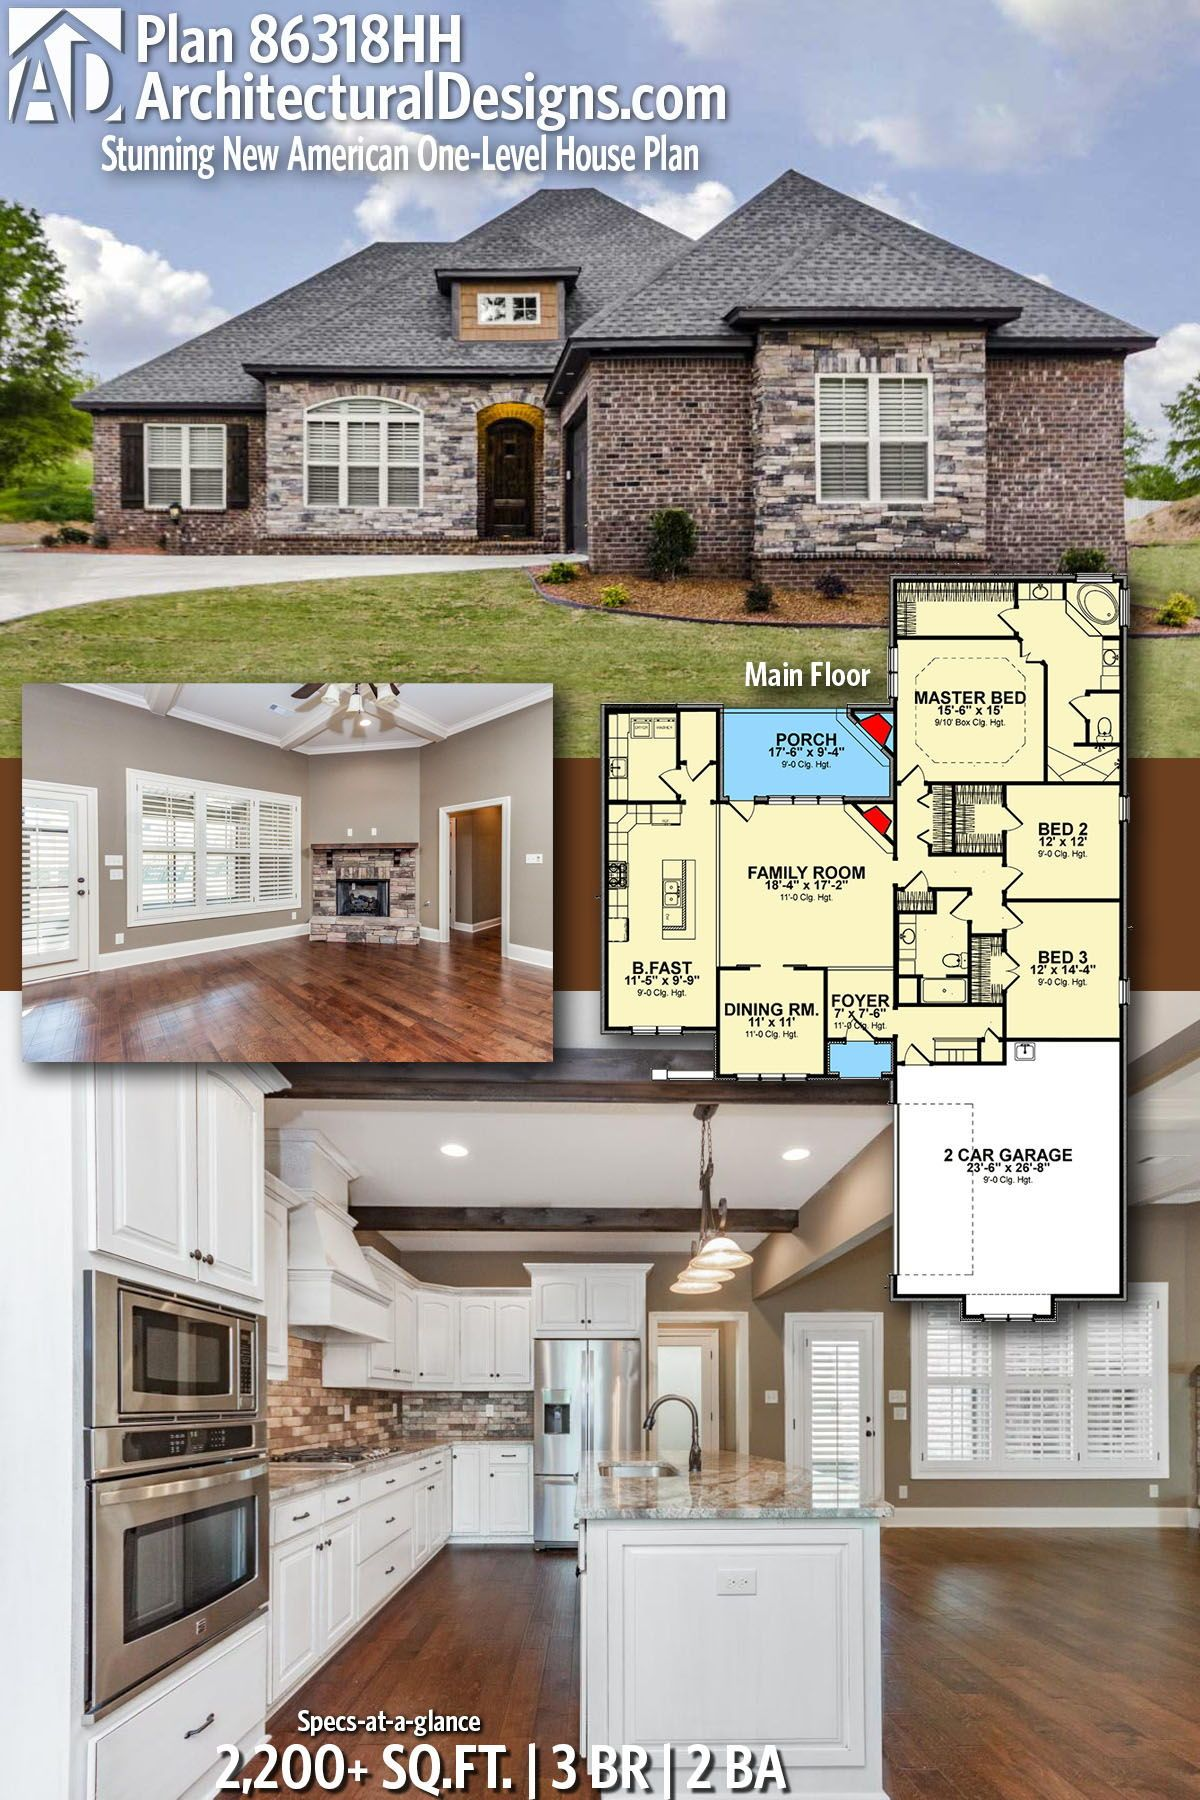 Plan 86318hh Stunning New American One Level House Plan House Plans One Level House Plans Architecture House